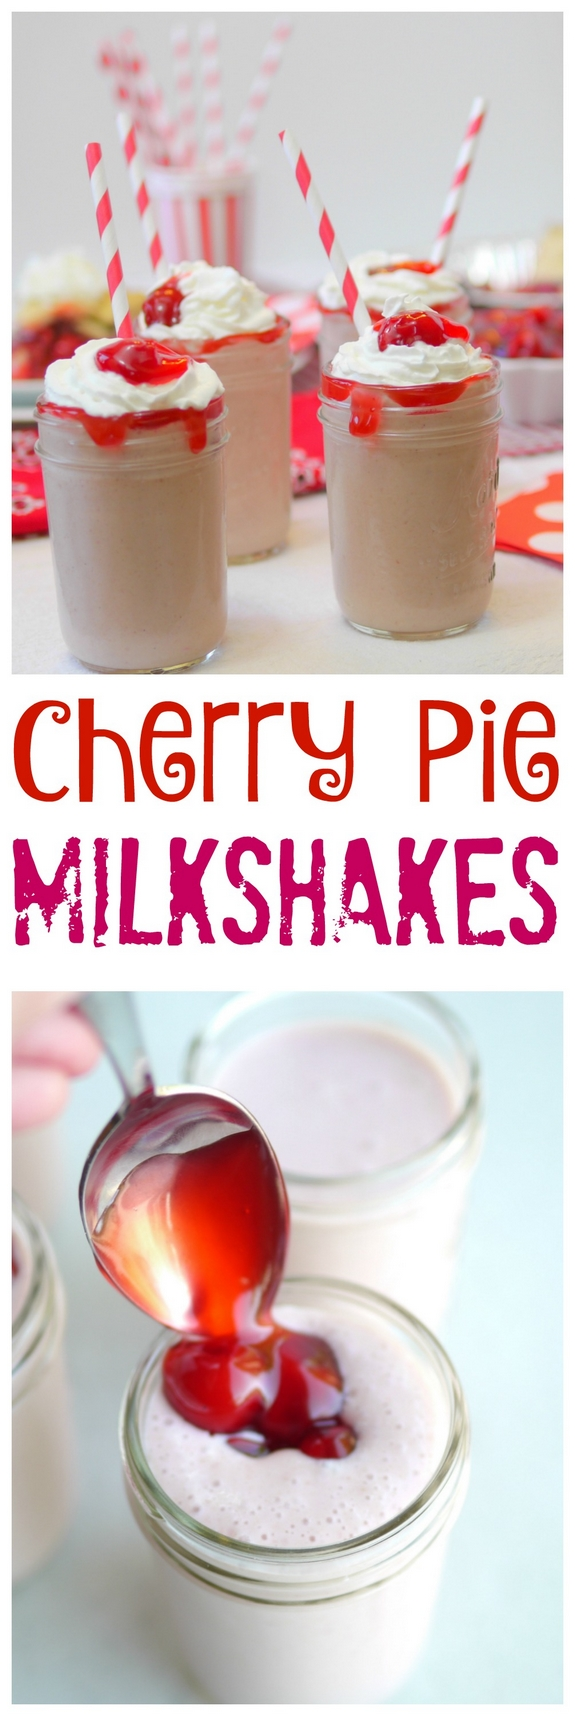 Cherry Pie Milkshakes